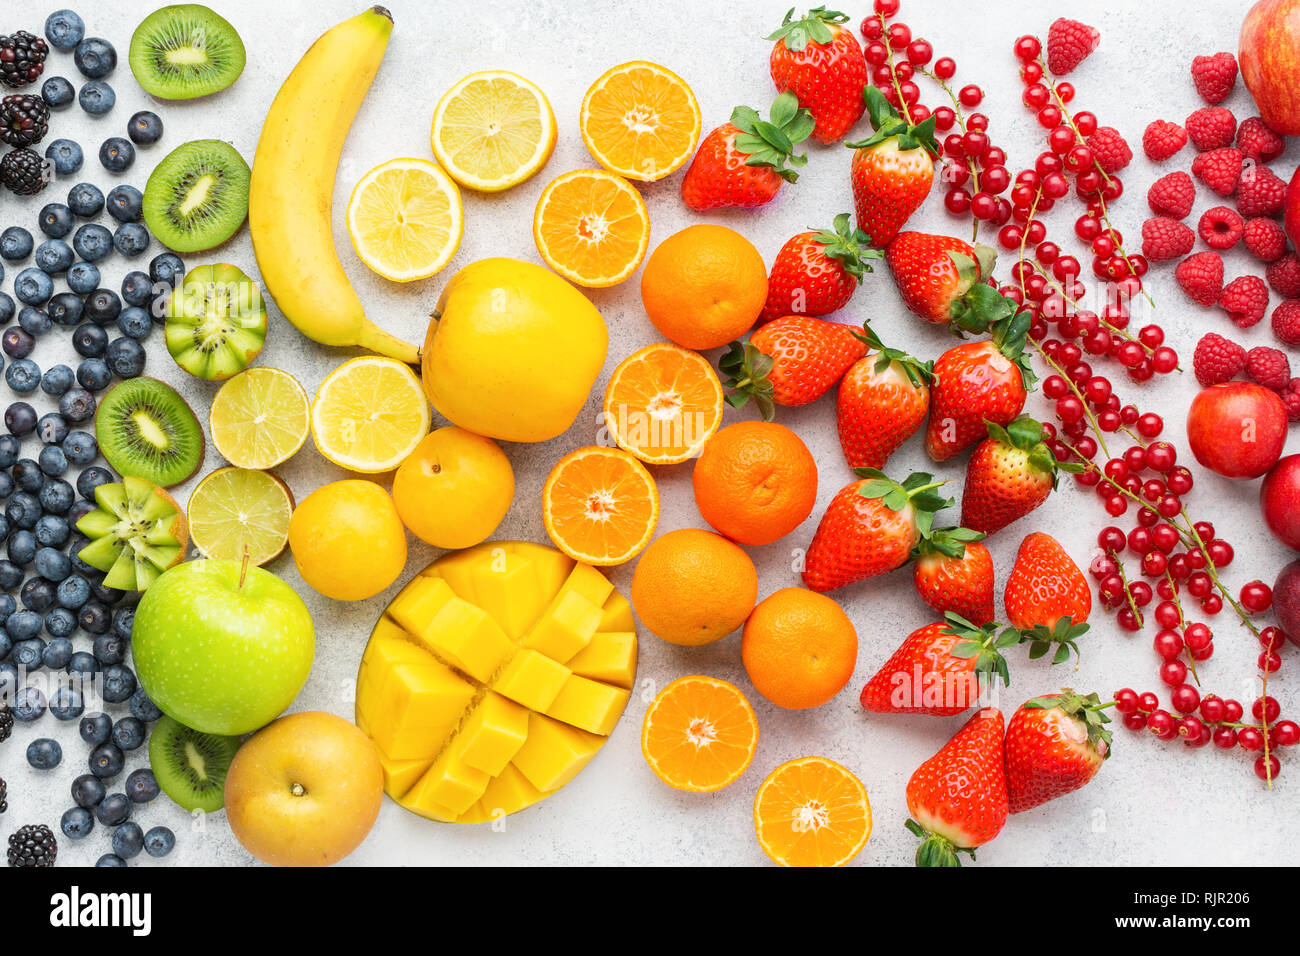 Colorful rainbow fruits berries background on white. Top view of strawberries blueberries cherries mango apple lemons oranges red currants plums - Stock Image